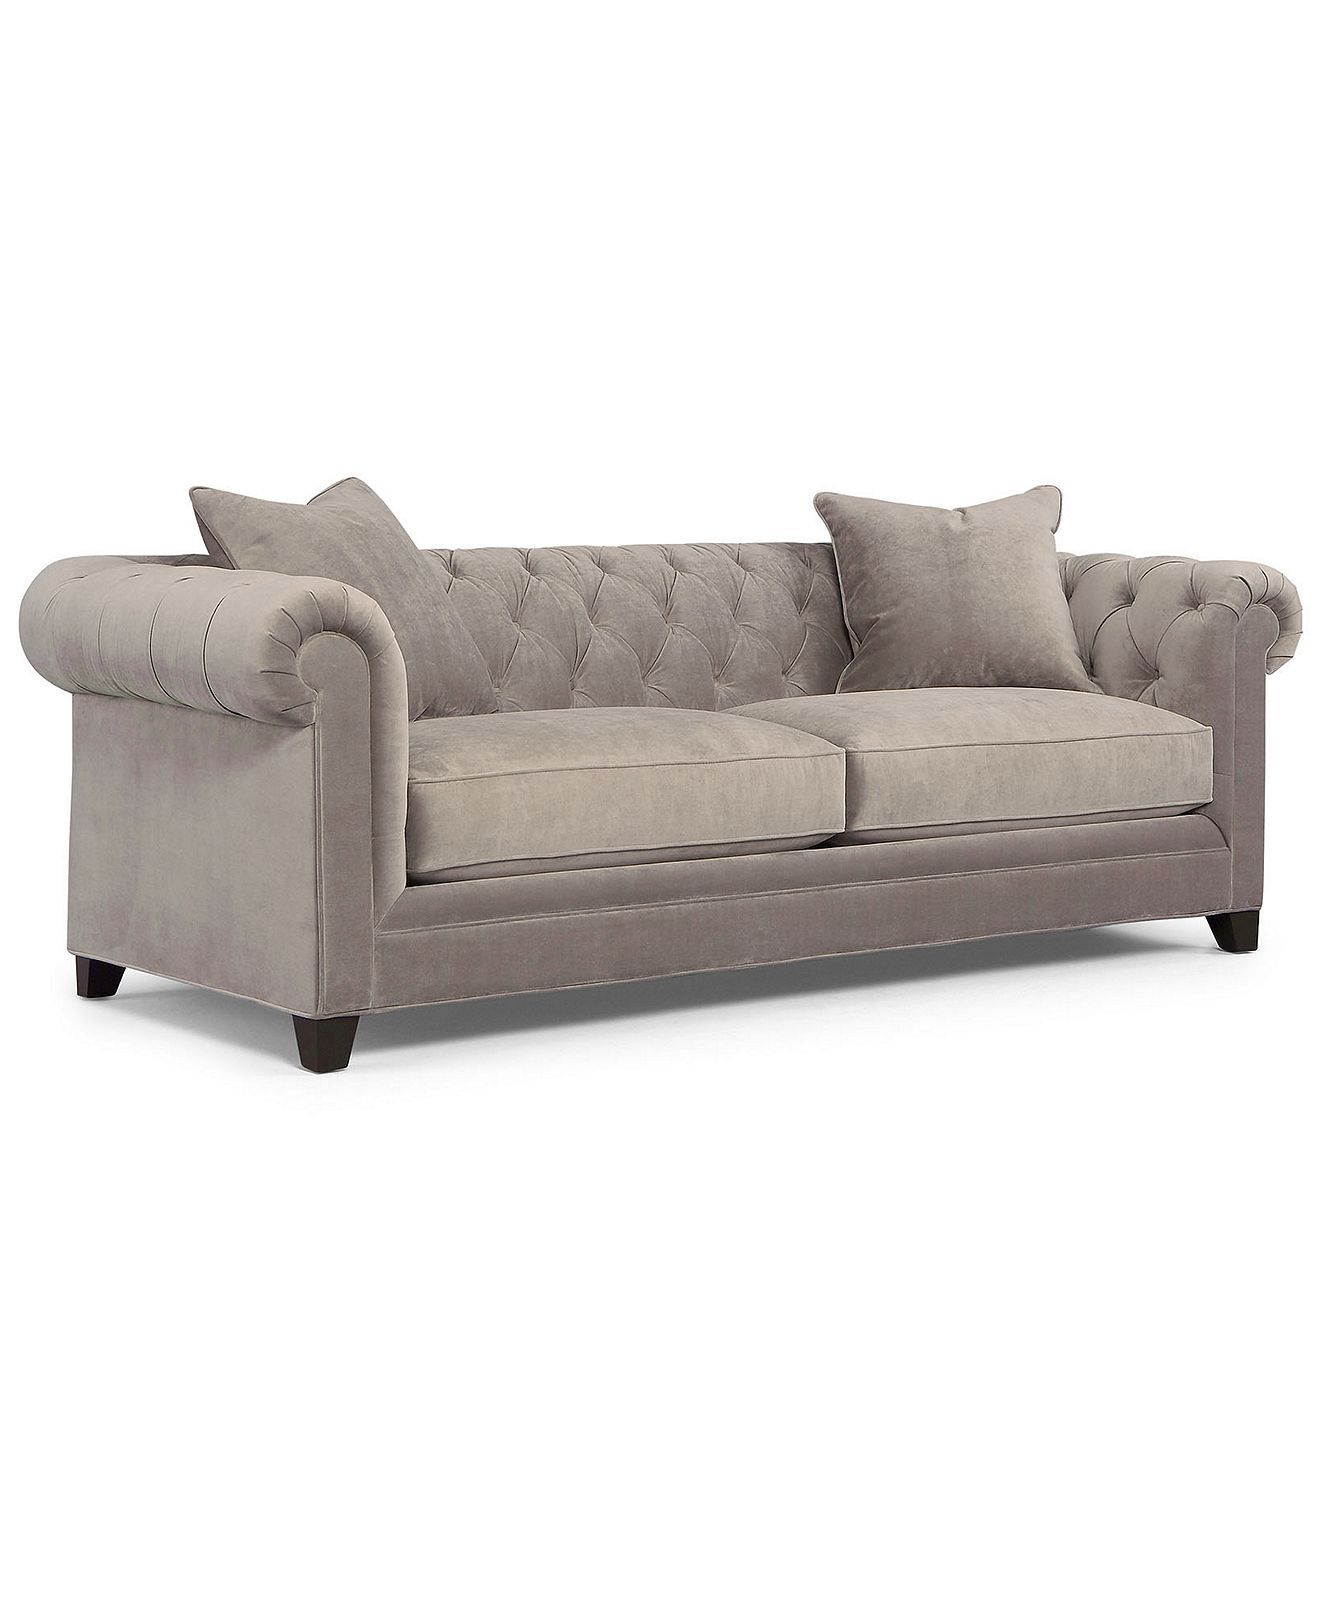 Martha Stewart Sofa, Saybridge - All Martha Stewart Furniture ...